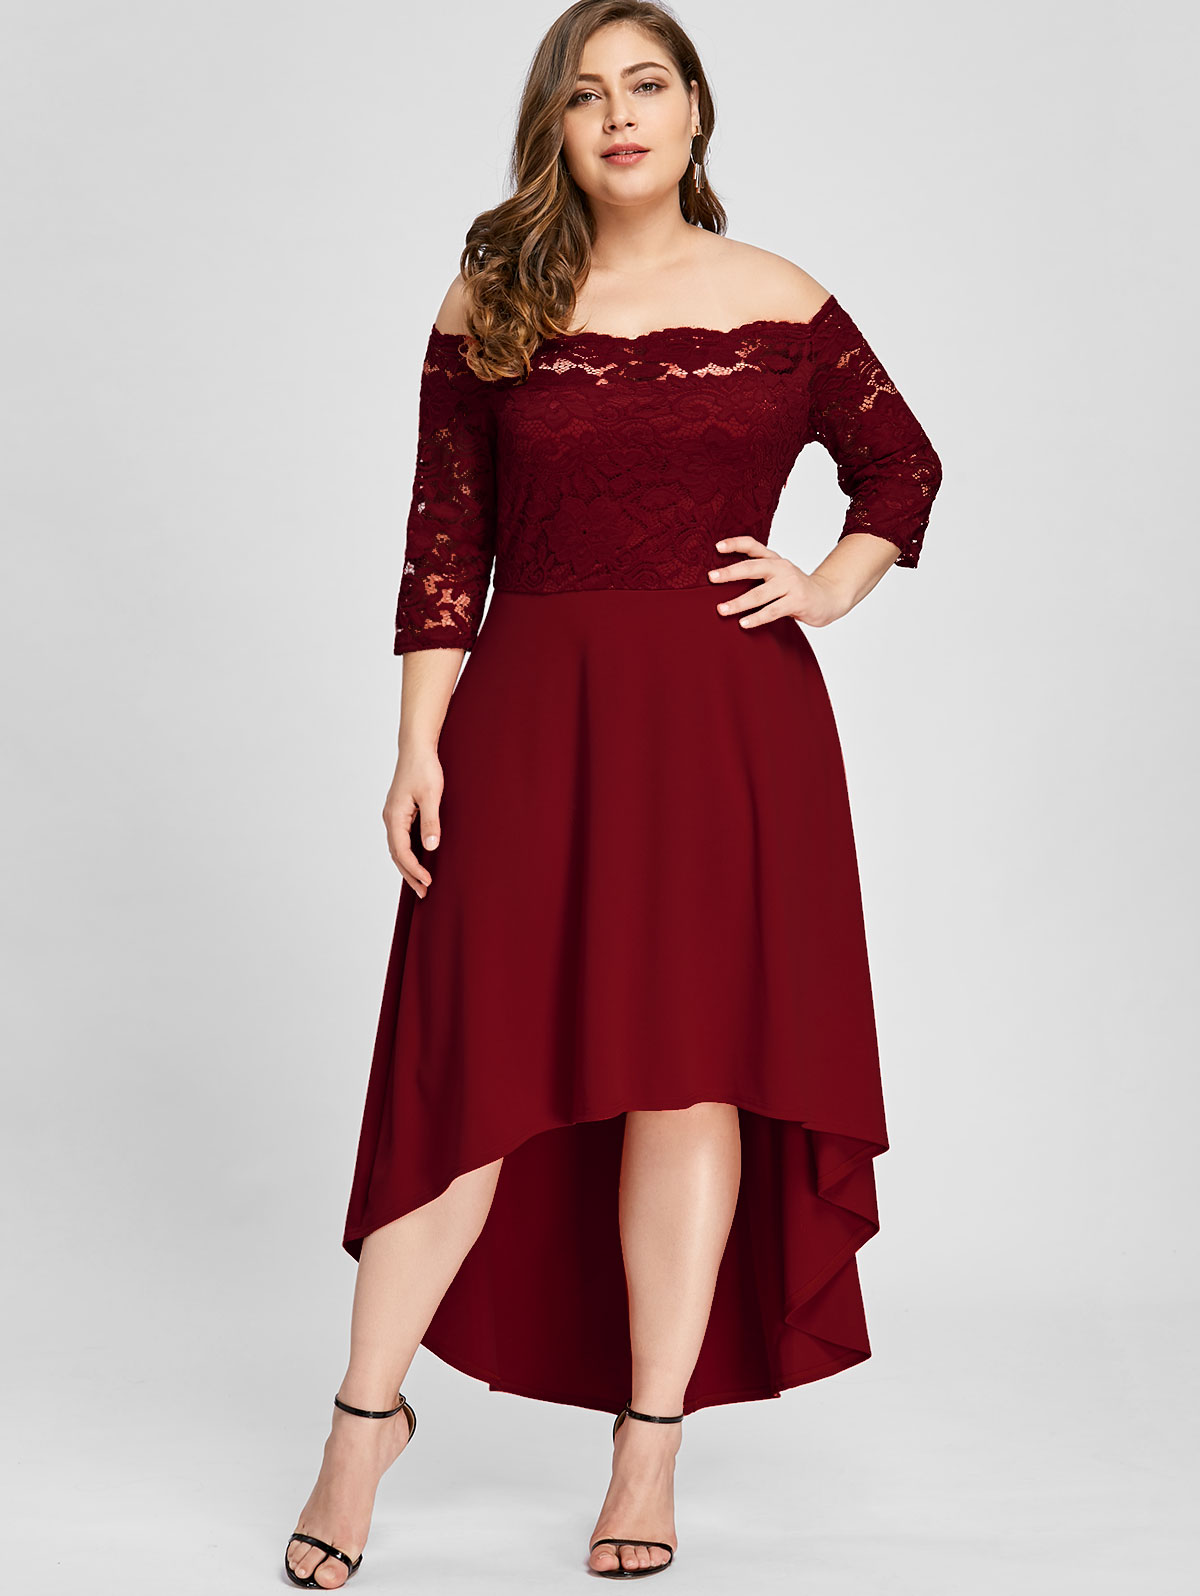 Women S Cocktail Dress With Sleeves